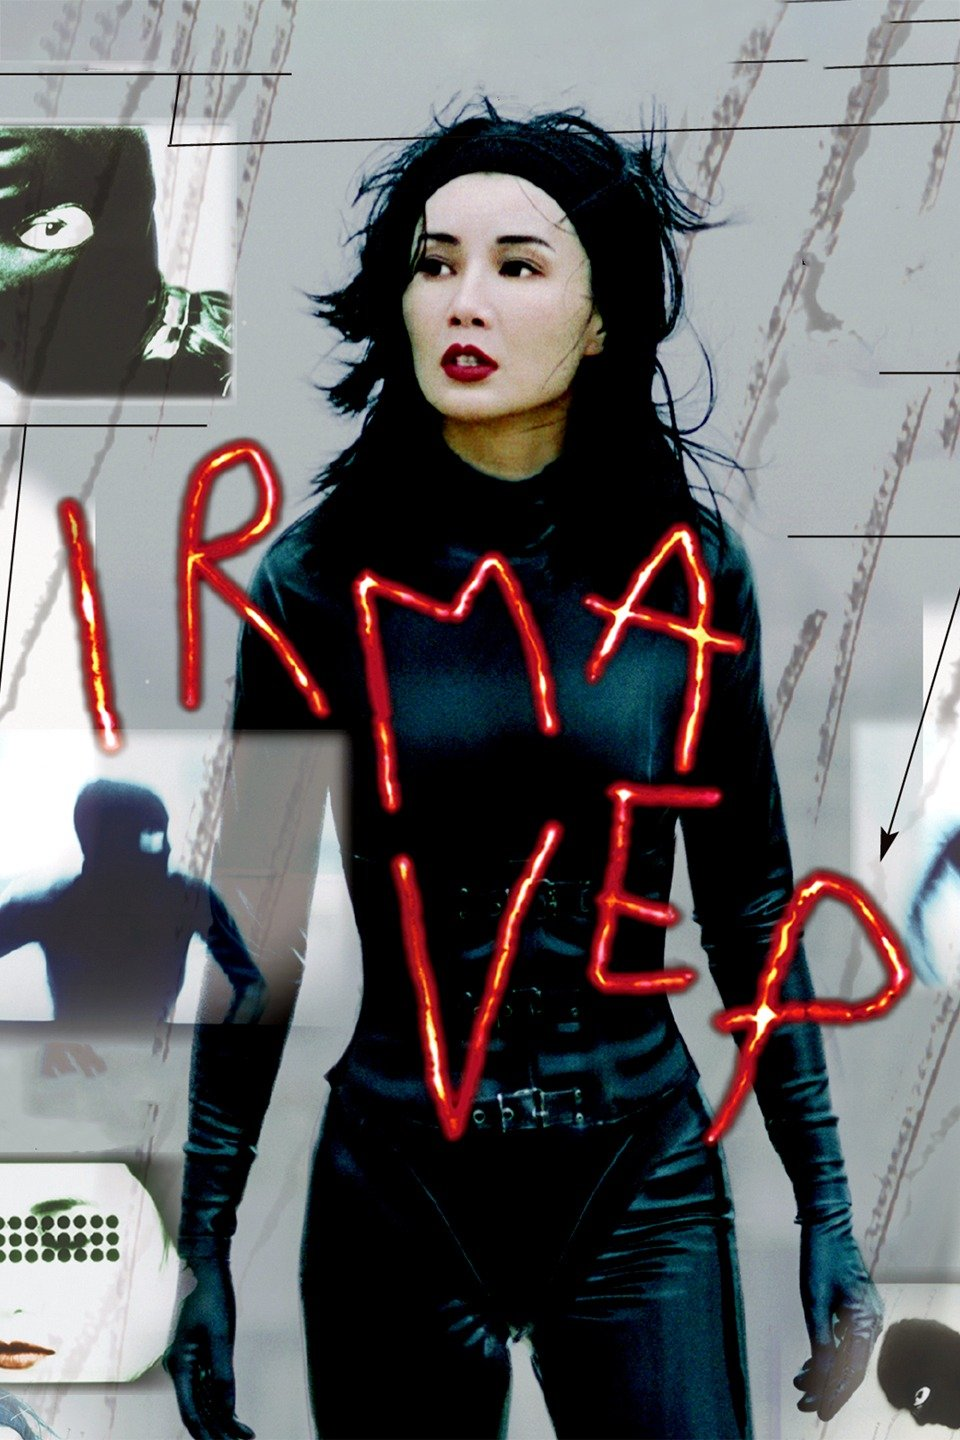 Irma Vep 1996 Full Movie Download BluRay 720p 821MB And 1080p 1.56GB